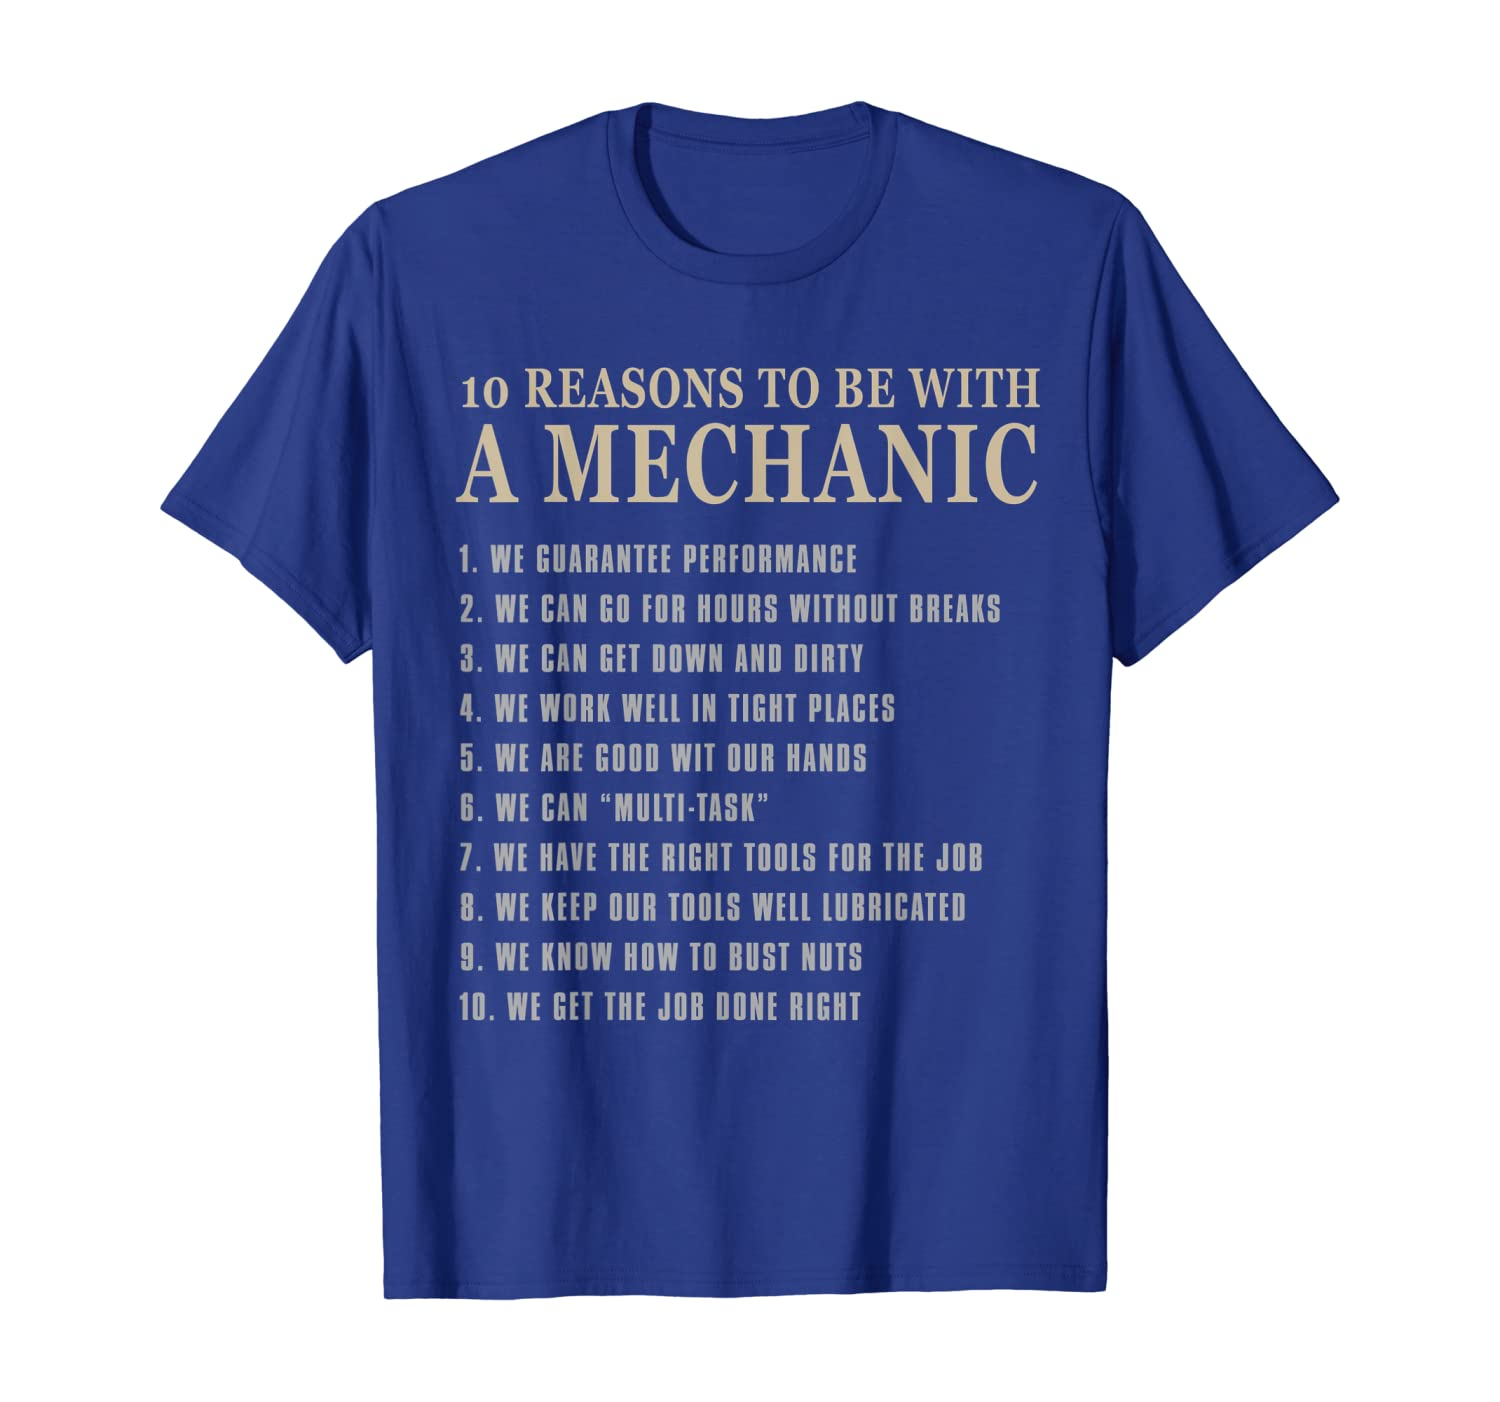 10 Reasons To Be With A Mechanic Tee Funny Mechanic T Shirt T-shirt Unisex Tshirt